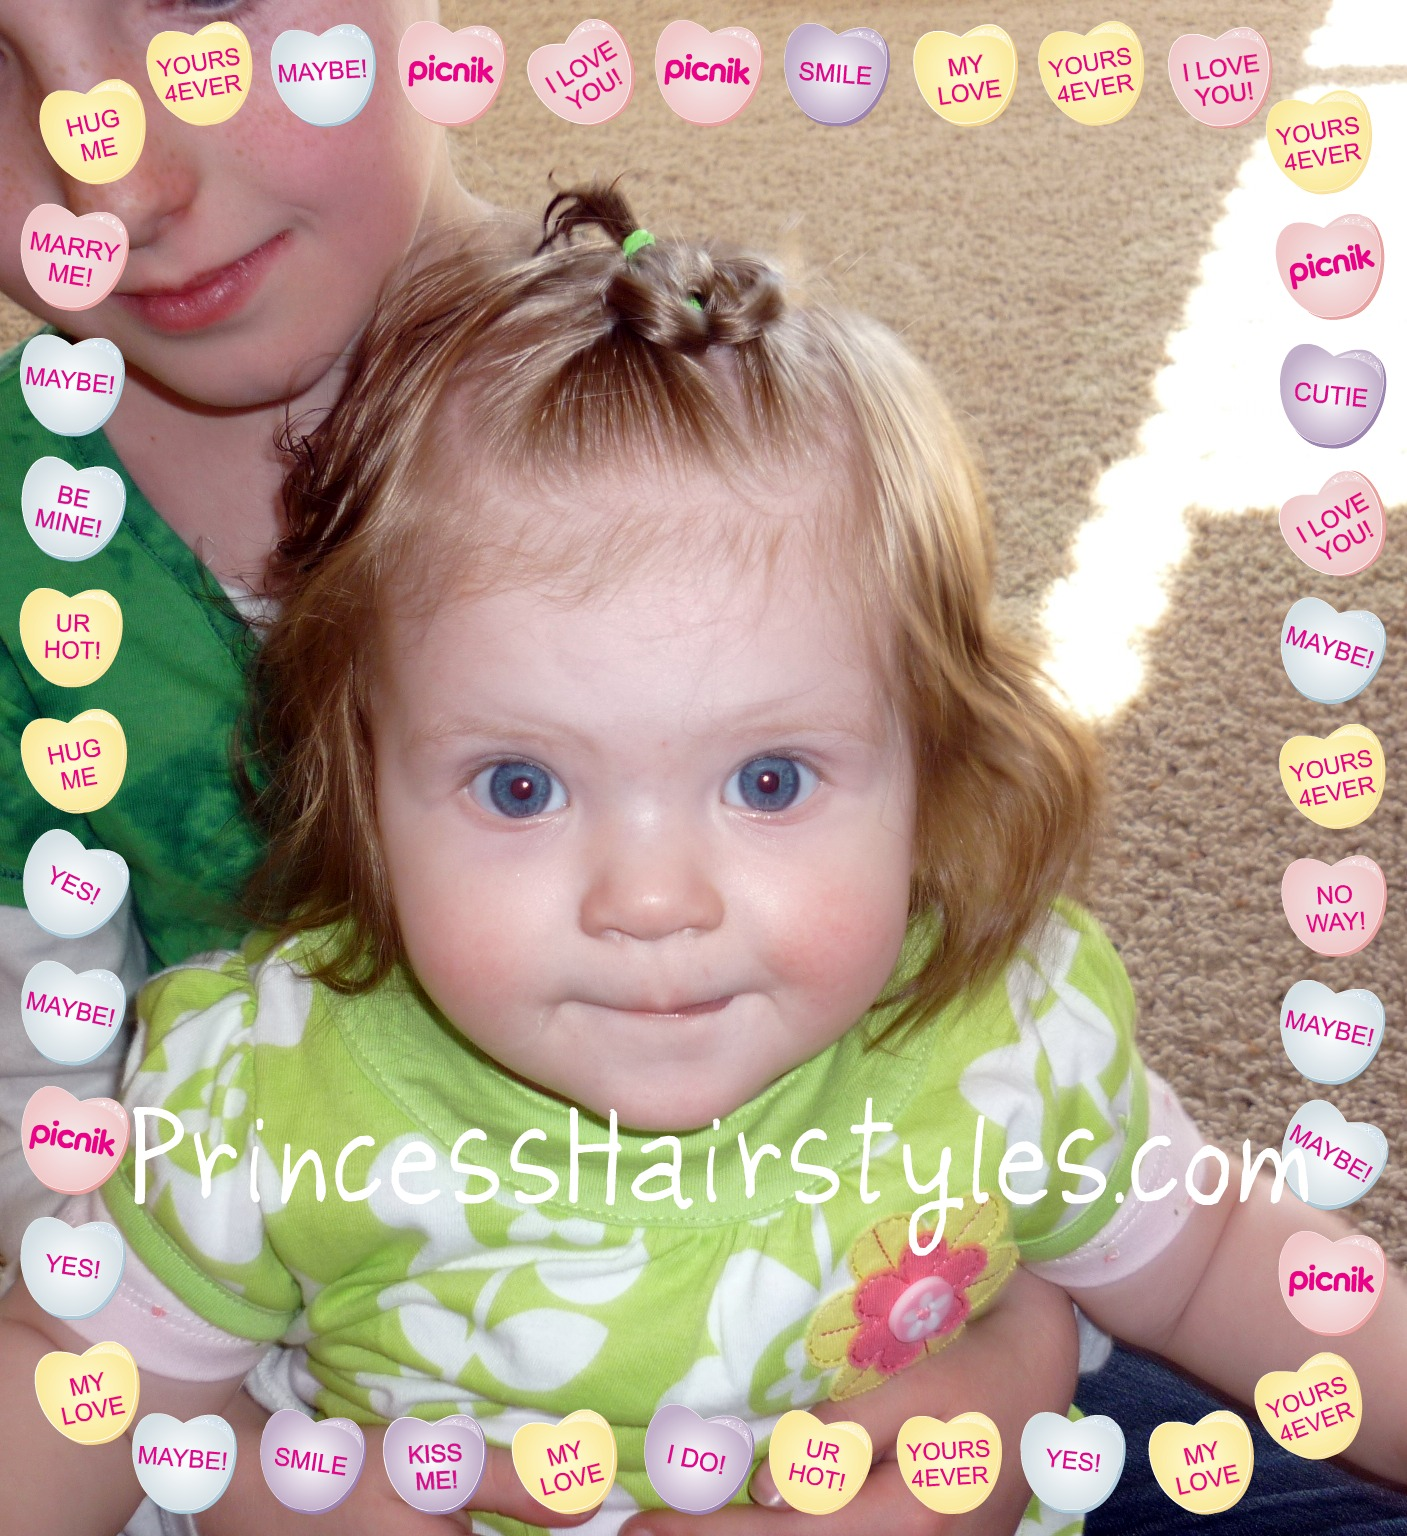 Baby Heart Hairstyle | Hairstyles For Girls - Princess Hairstyles